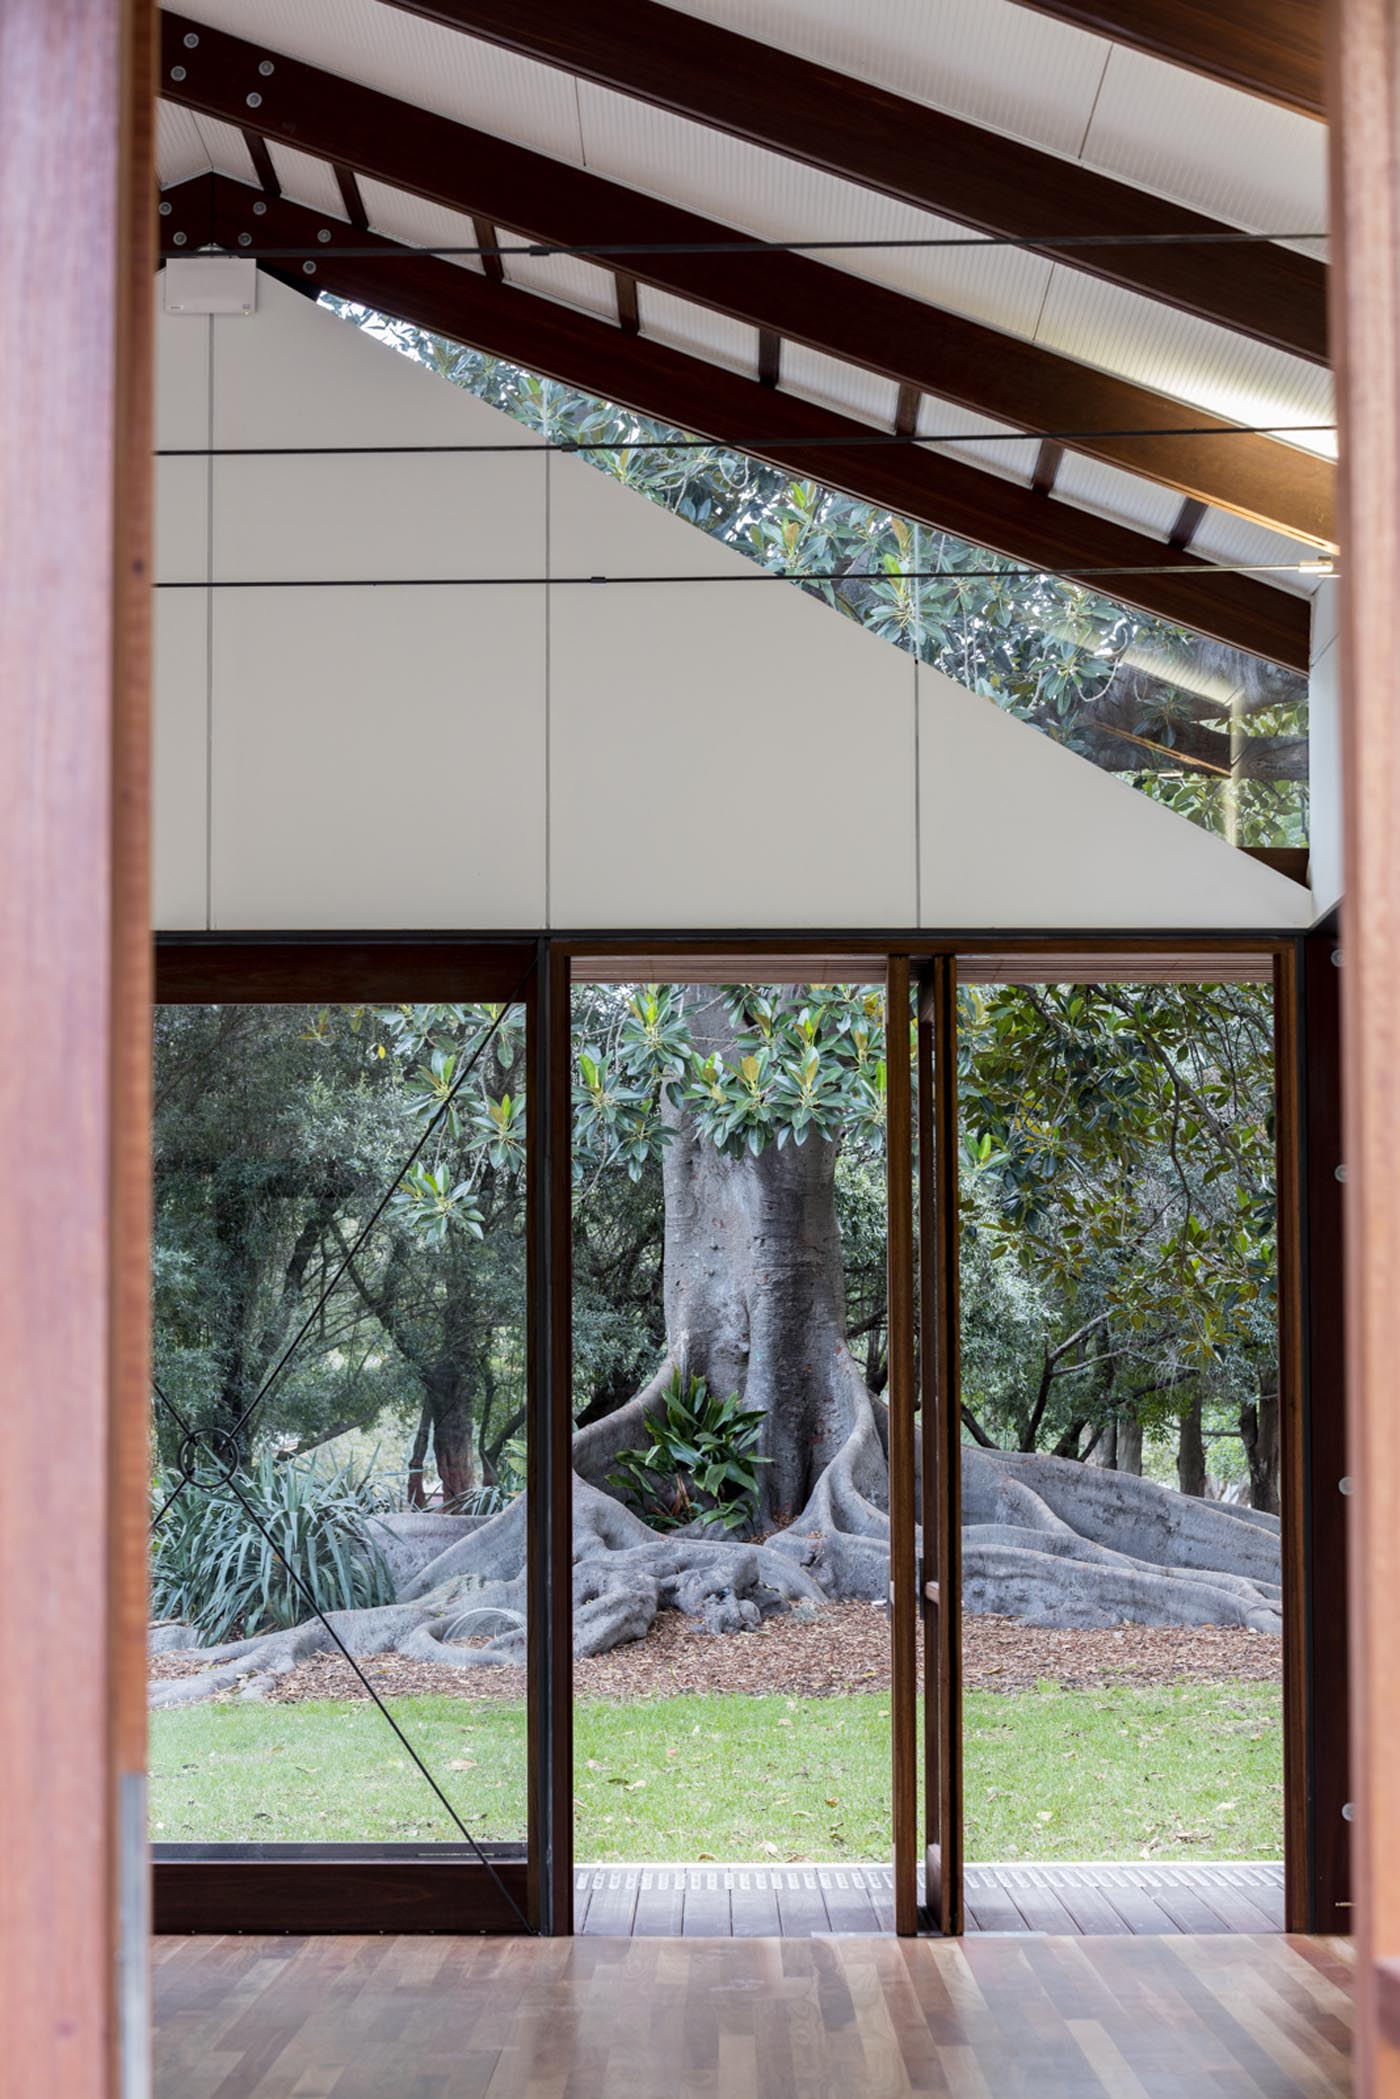 Cabarita Park Conservatory by award winning public architectural firm Sam Crawford Architects. View through to giant fig tree.